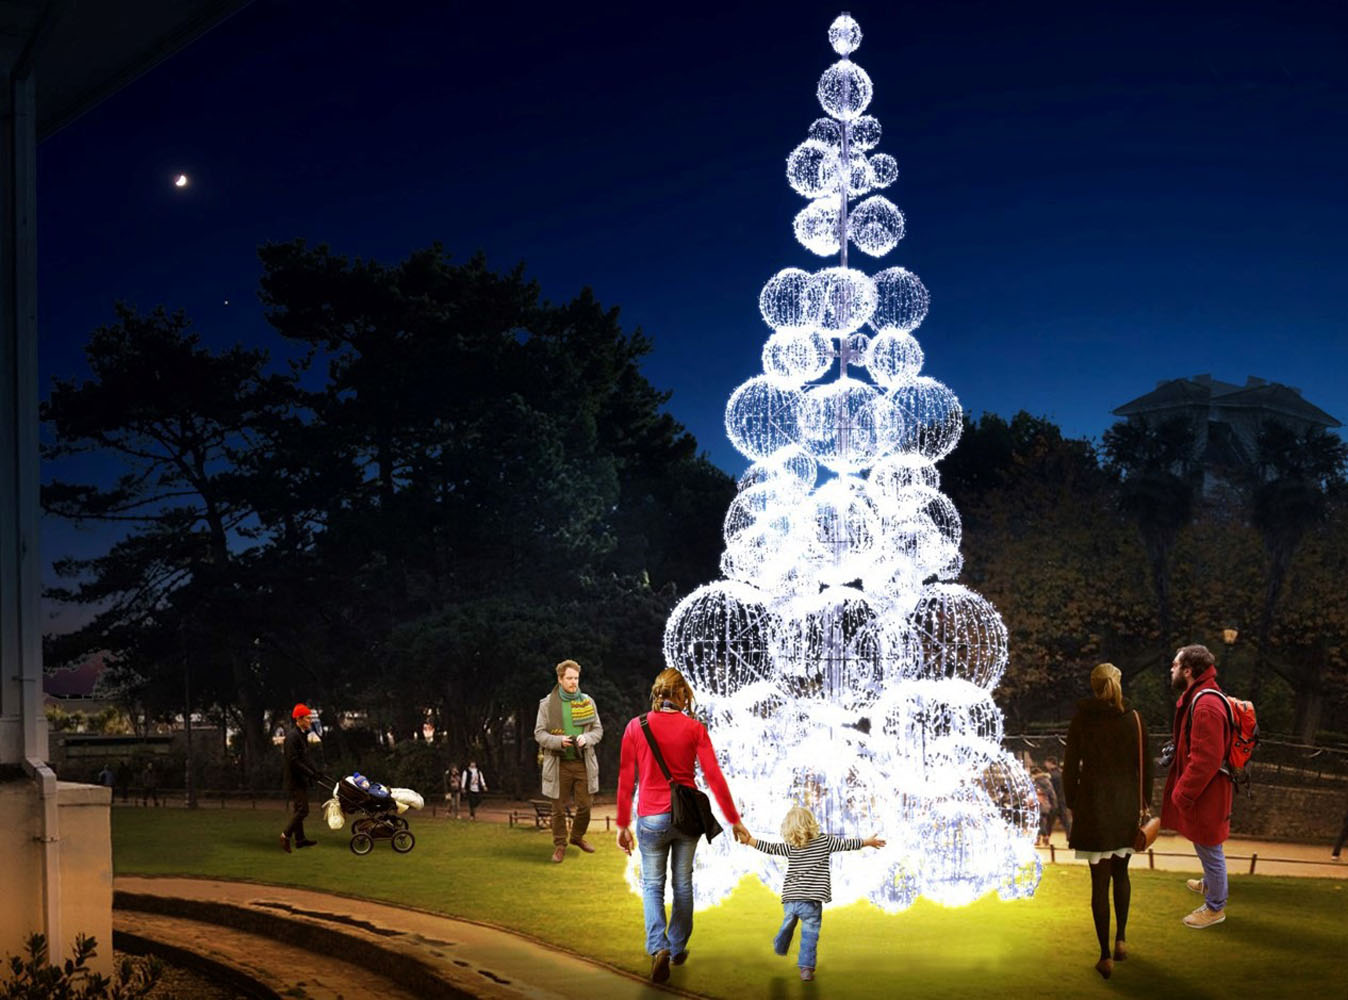 A mock up of a large Christmas tree made of sparkling balls.